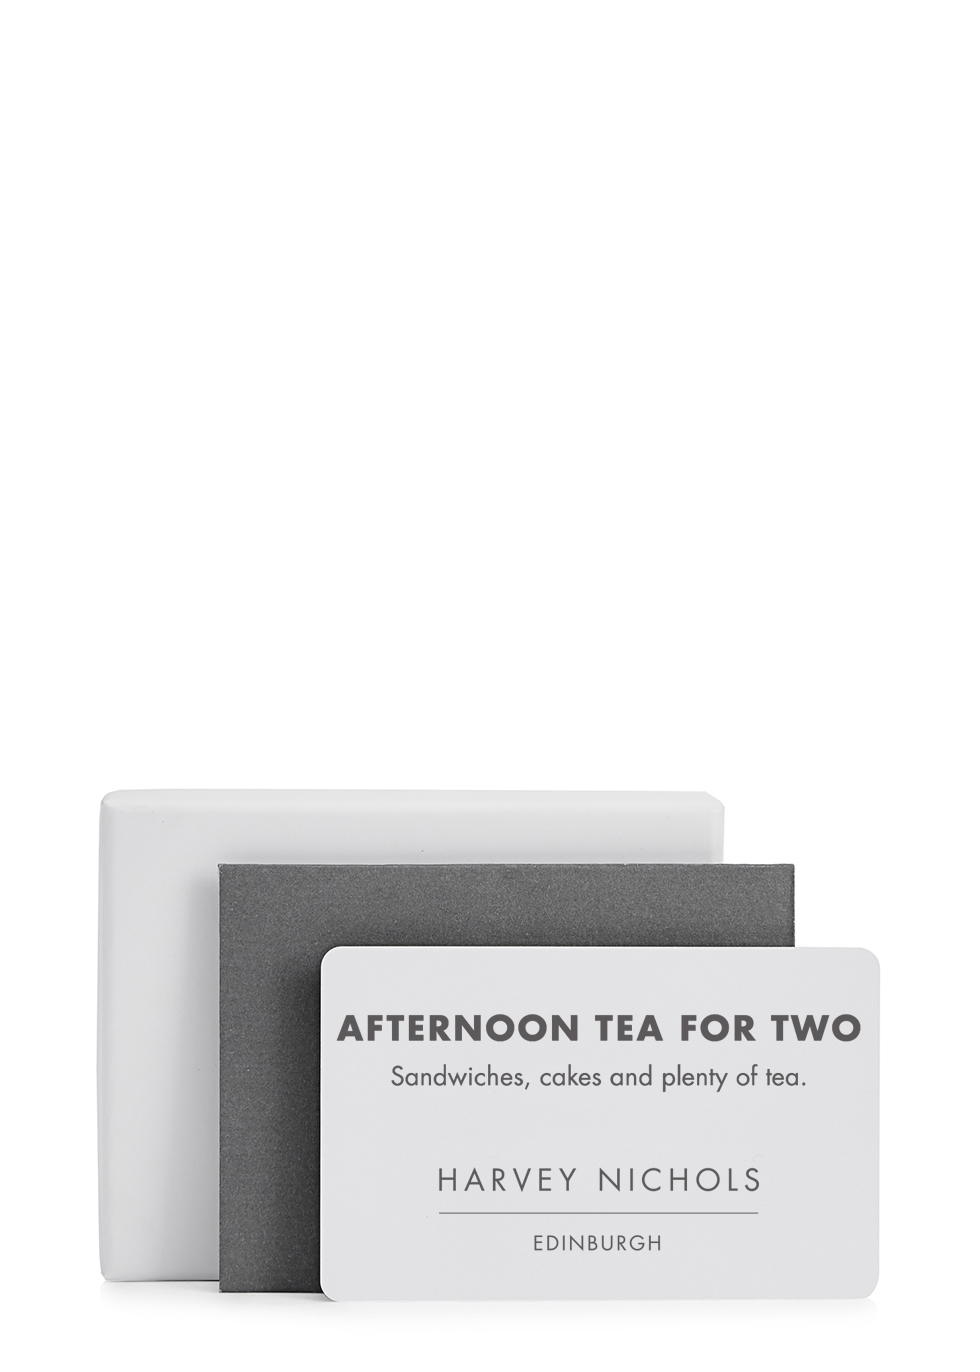 Afternoon Tea For Two - Edinburgh - Gift Experiences